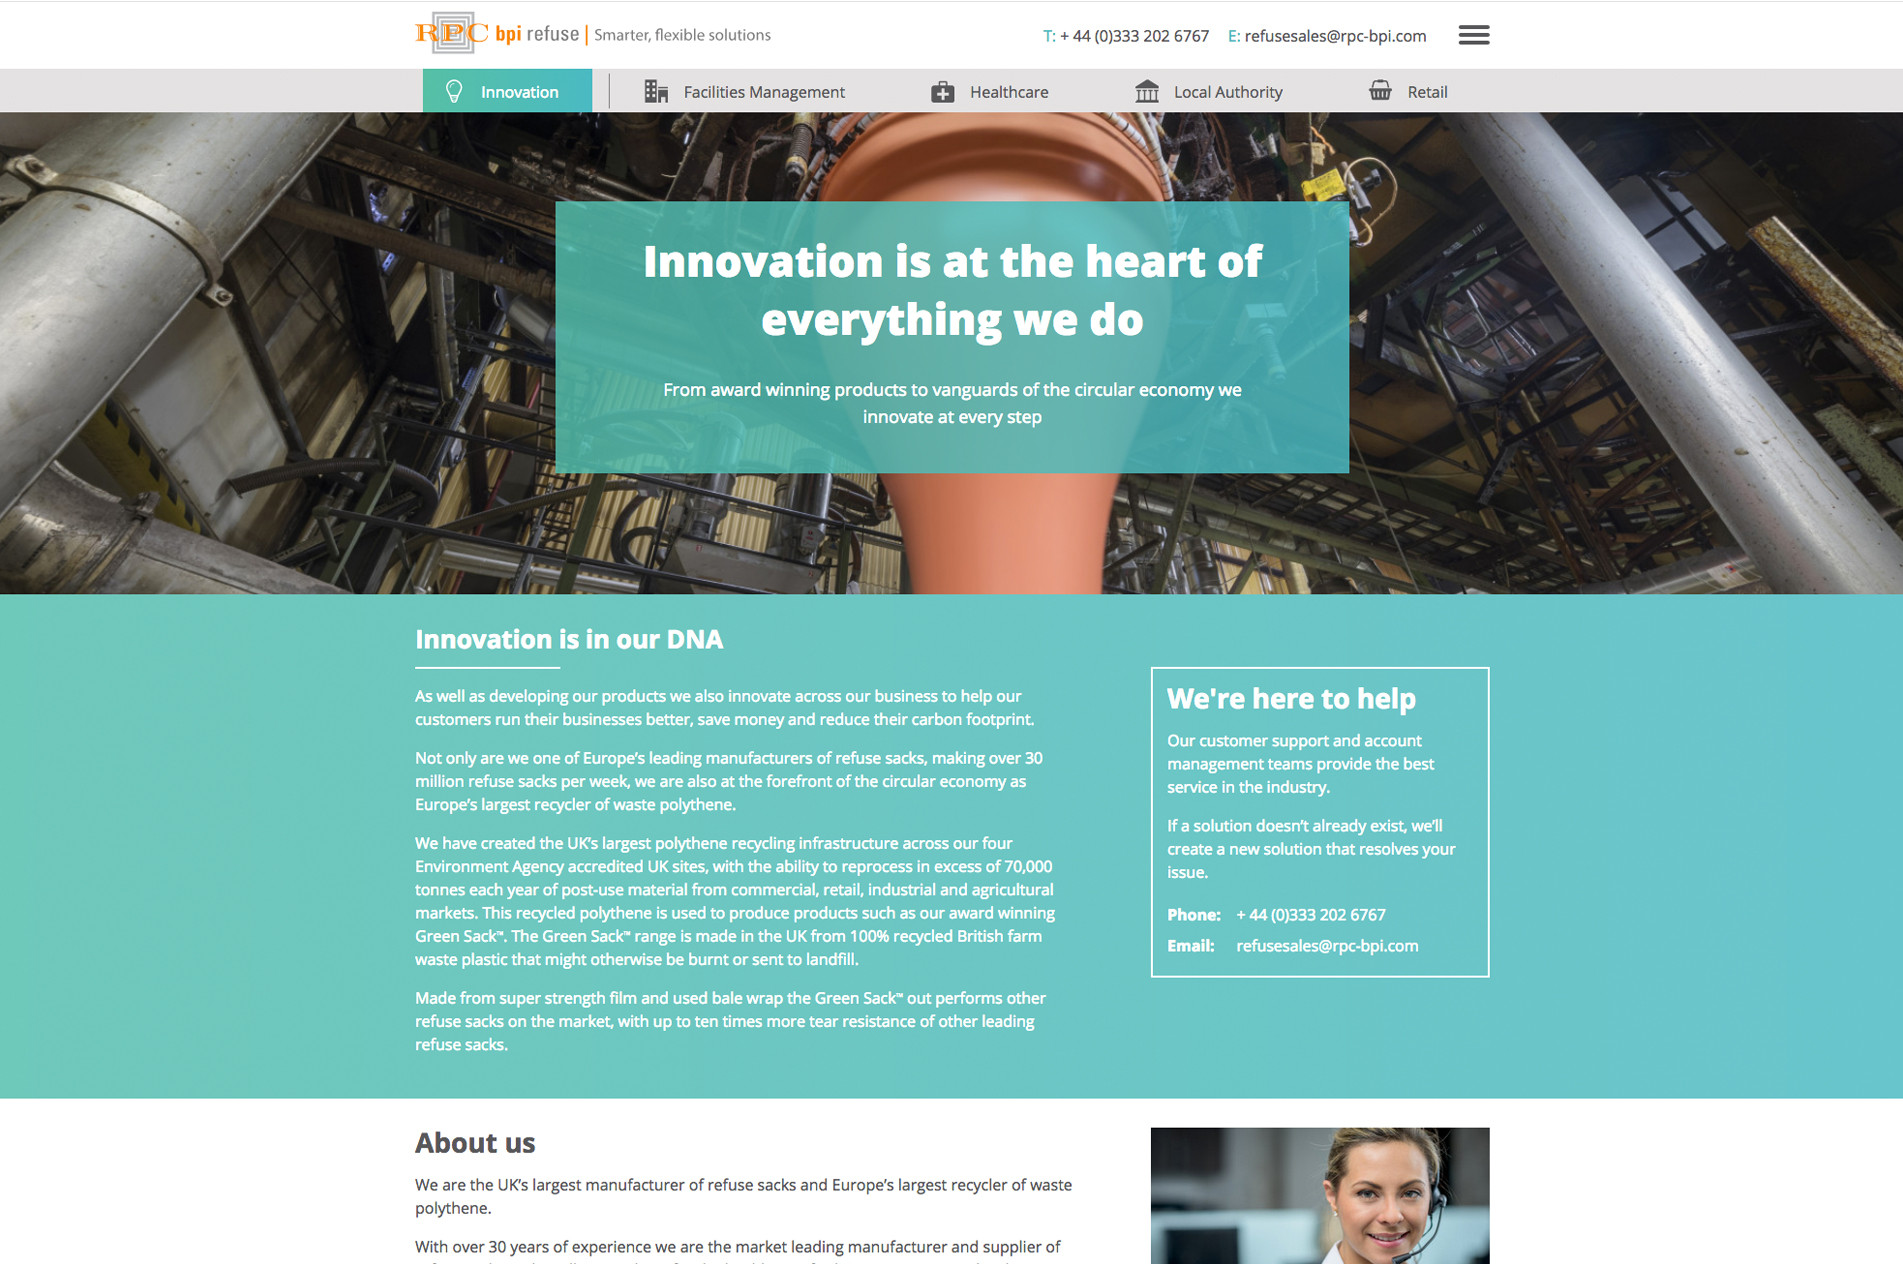 Innovation page